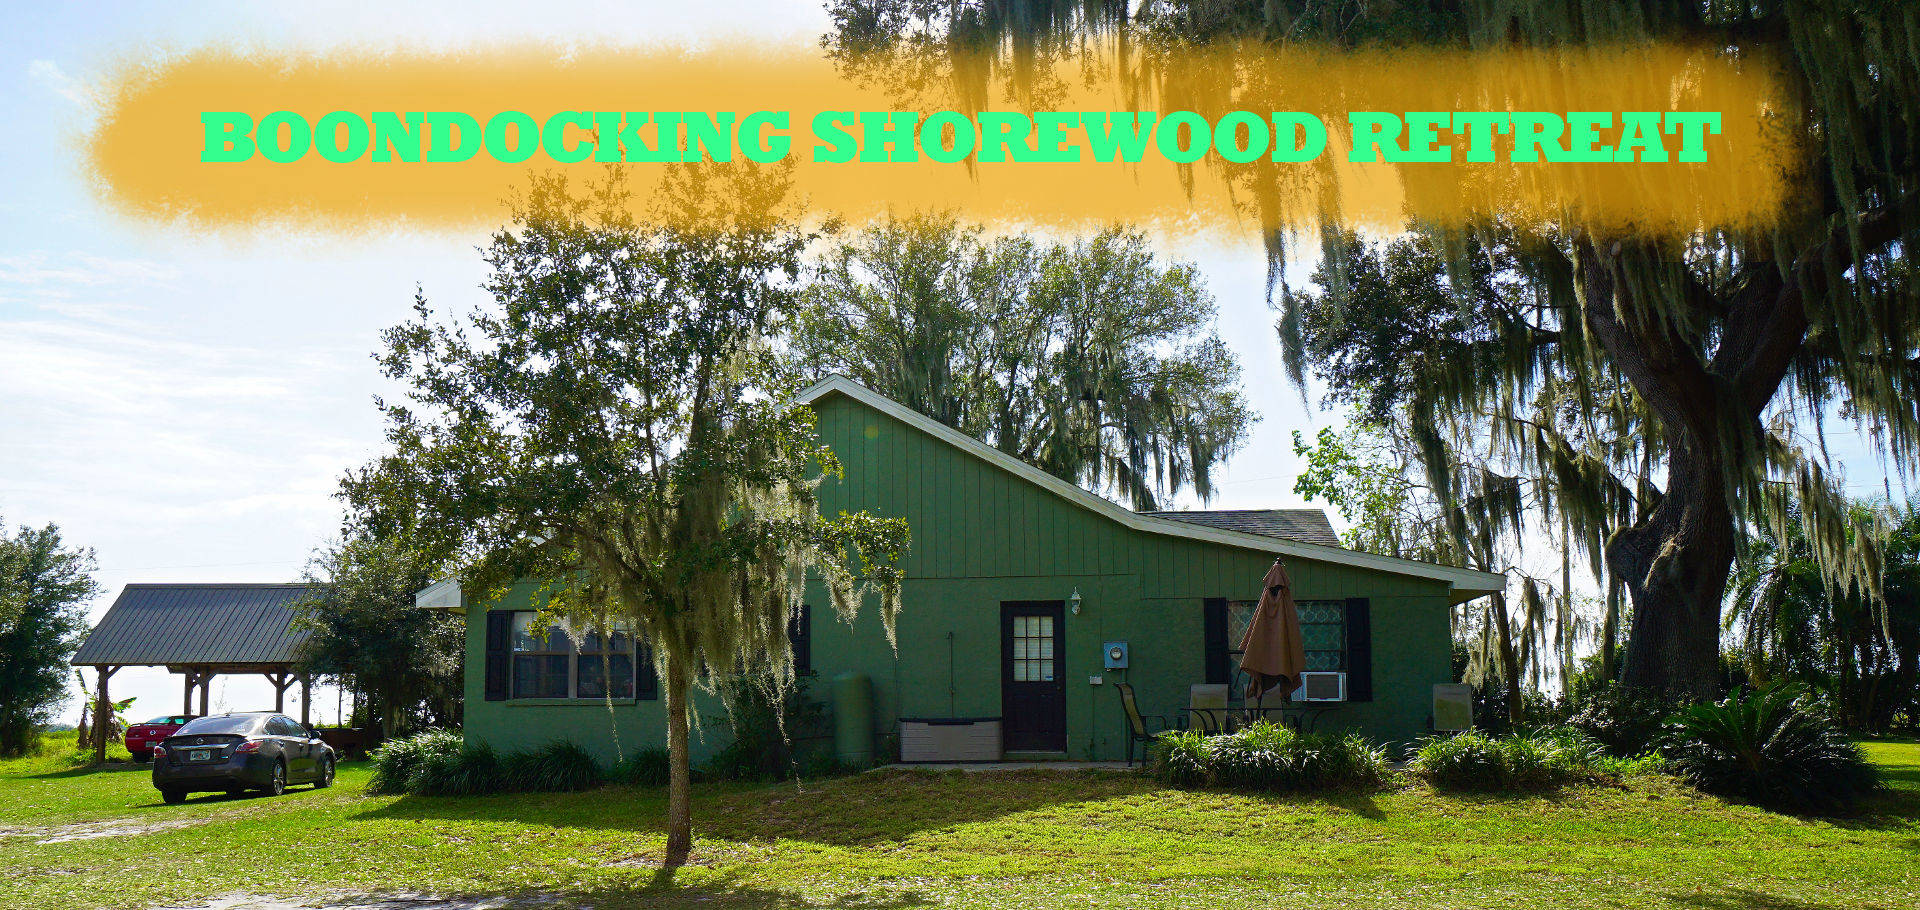 boondockers welcome free rv camping Shorewood Retreat